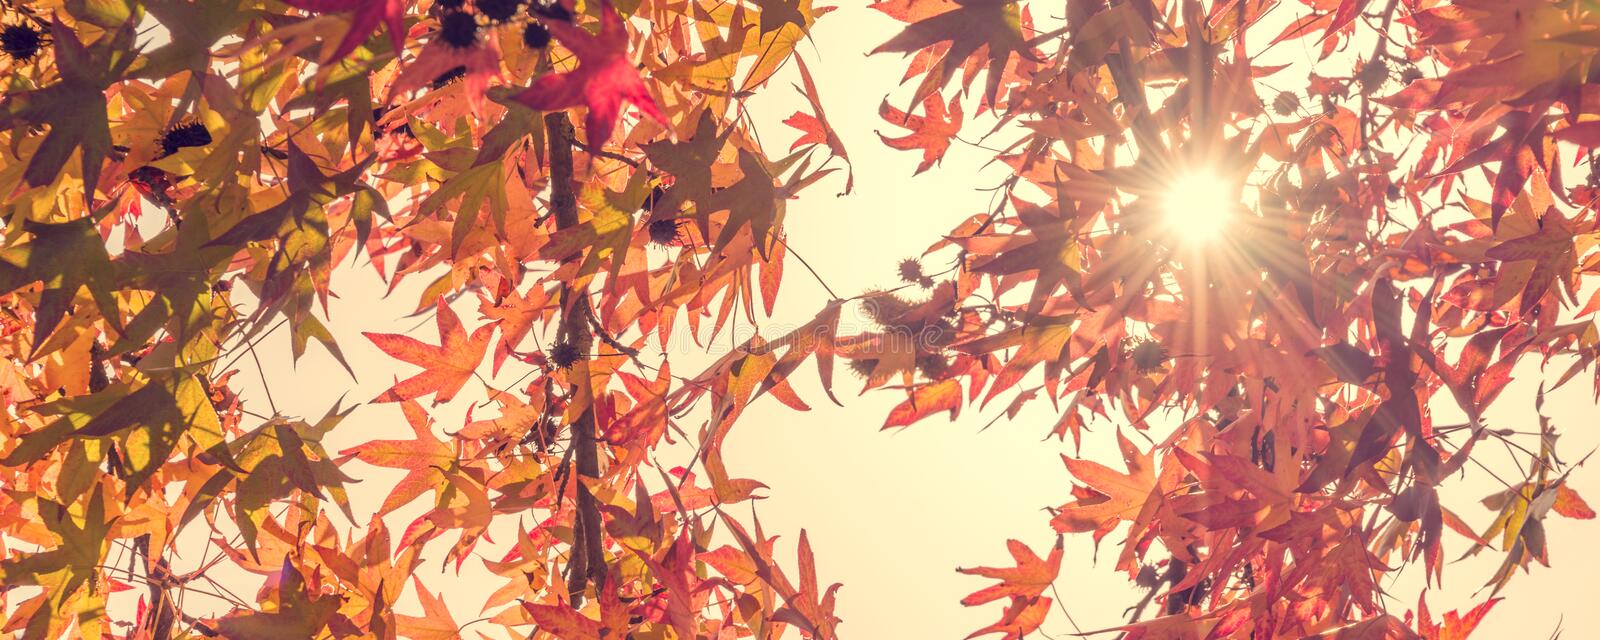 Autumn maple leaves with sunbeam, forest in autumn, vintage process. Autumn maple leaves with sunbeam, looking up in a forest in autumn, vintage process stock photo